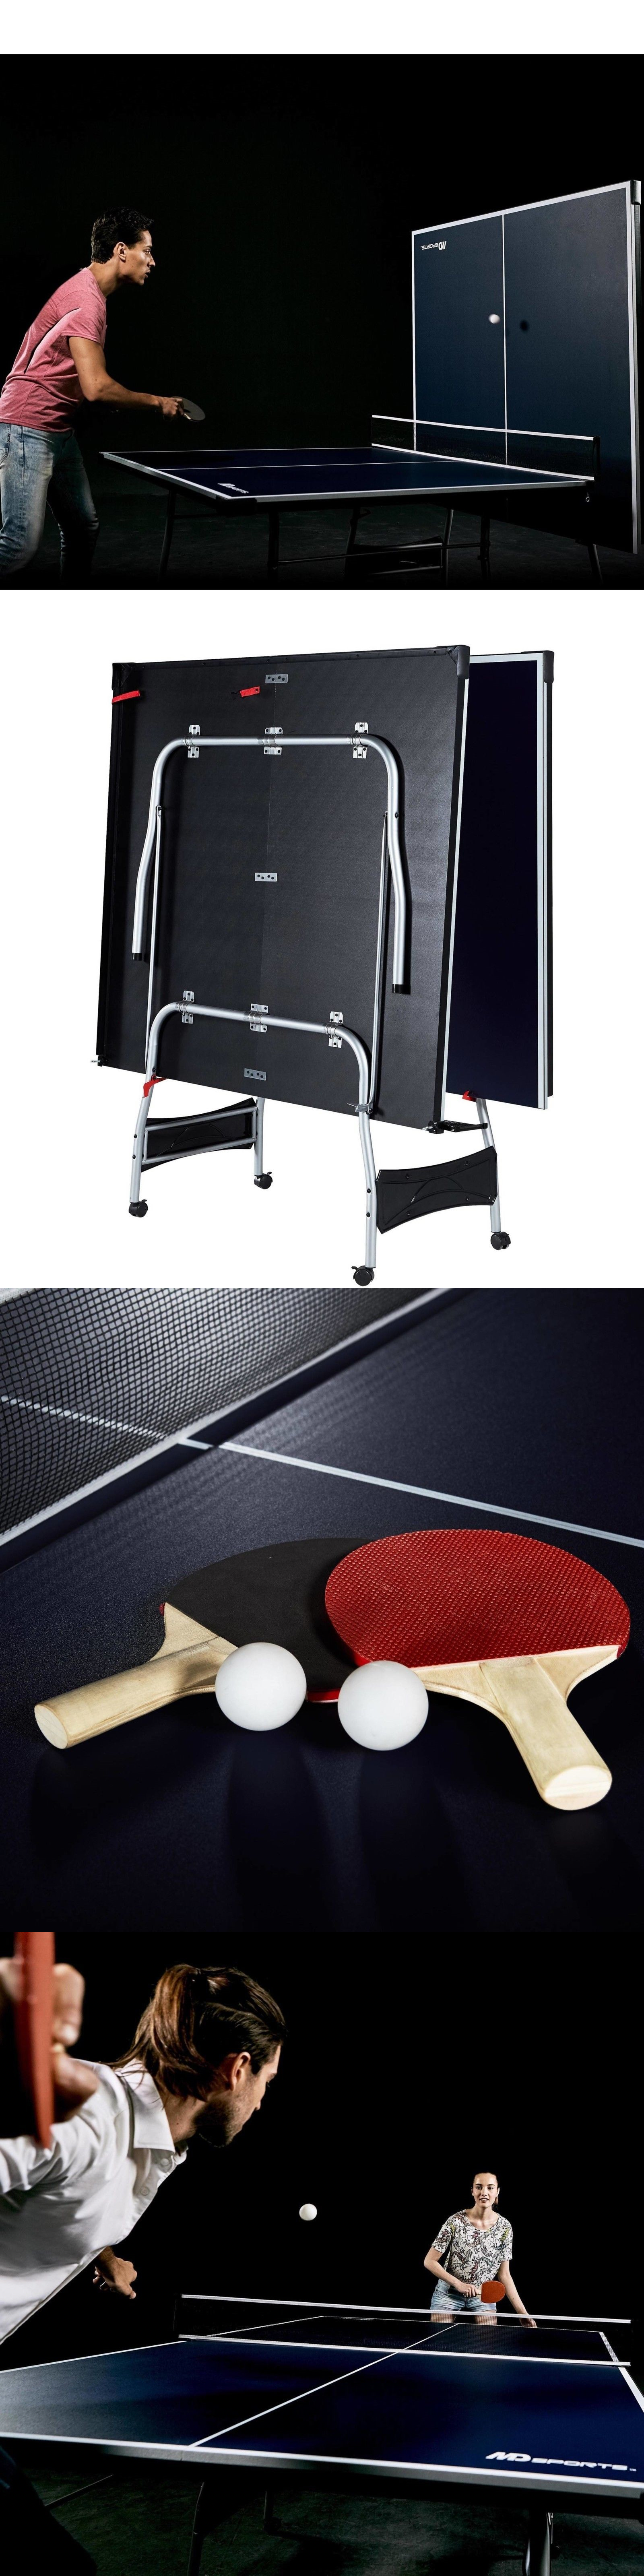 Tables 97075: 4 Piece Table Tennis Table, Official Tournament Size 9 X 5